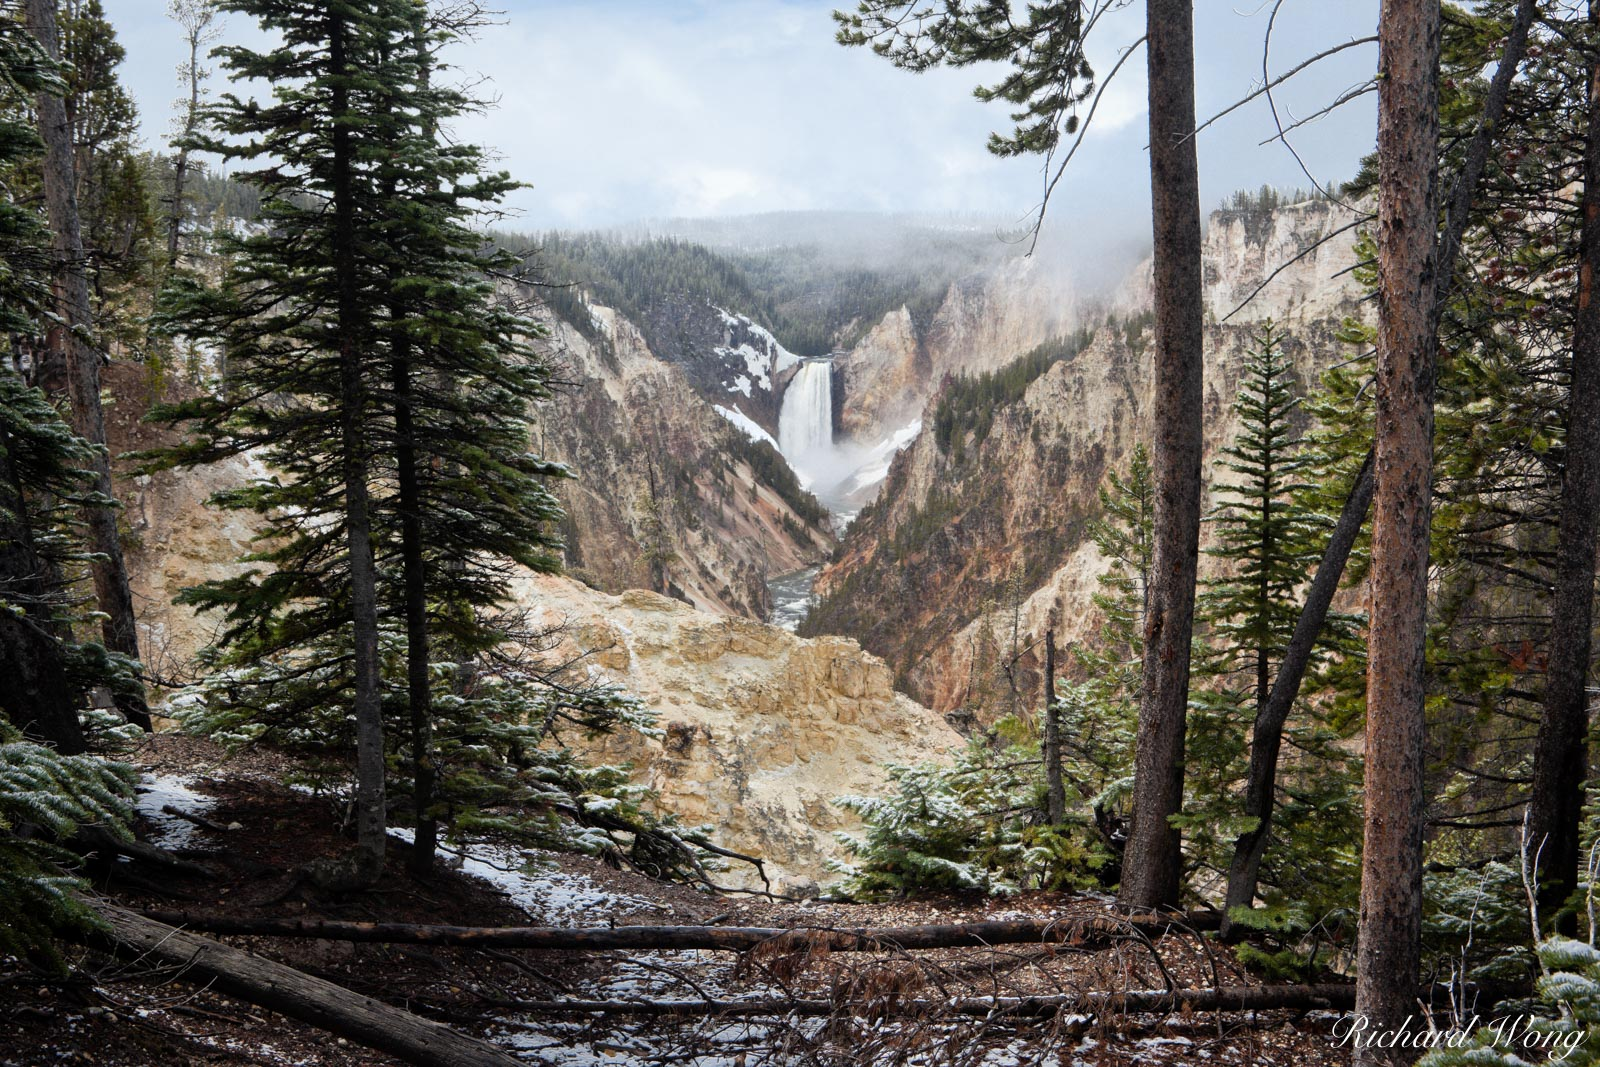 Grand Canyon of the Yellowstone Scenic View from Artist Point with Lower Yellowstone Falls in Distance, Yellowstone National Park, Wyoming, photo, photo